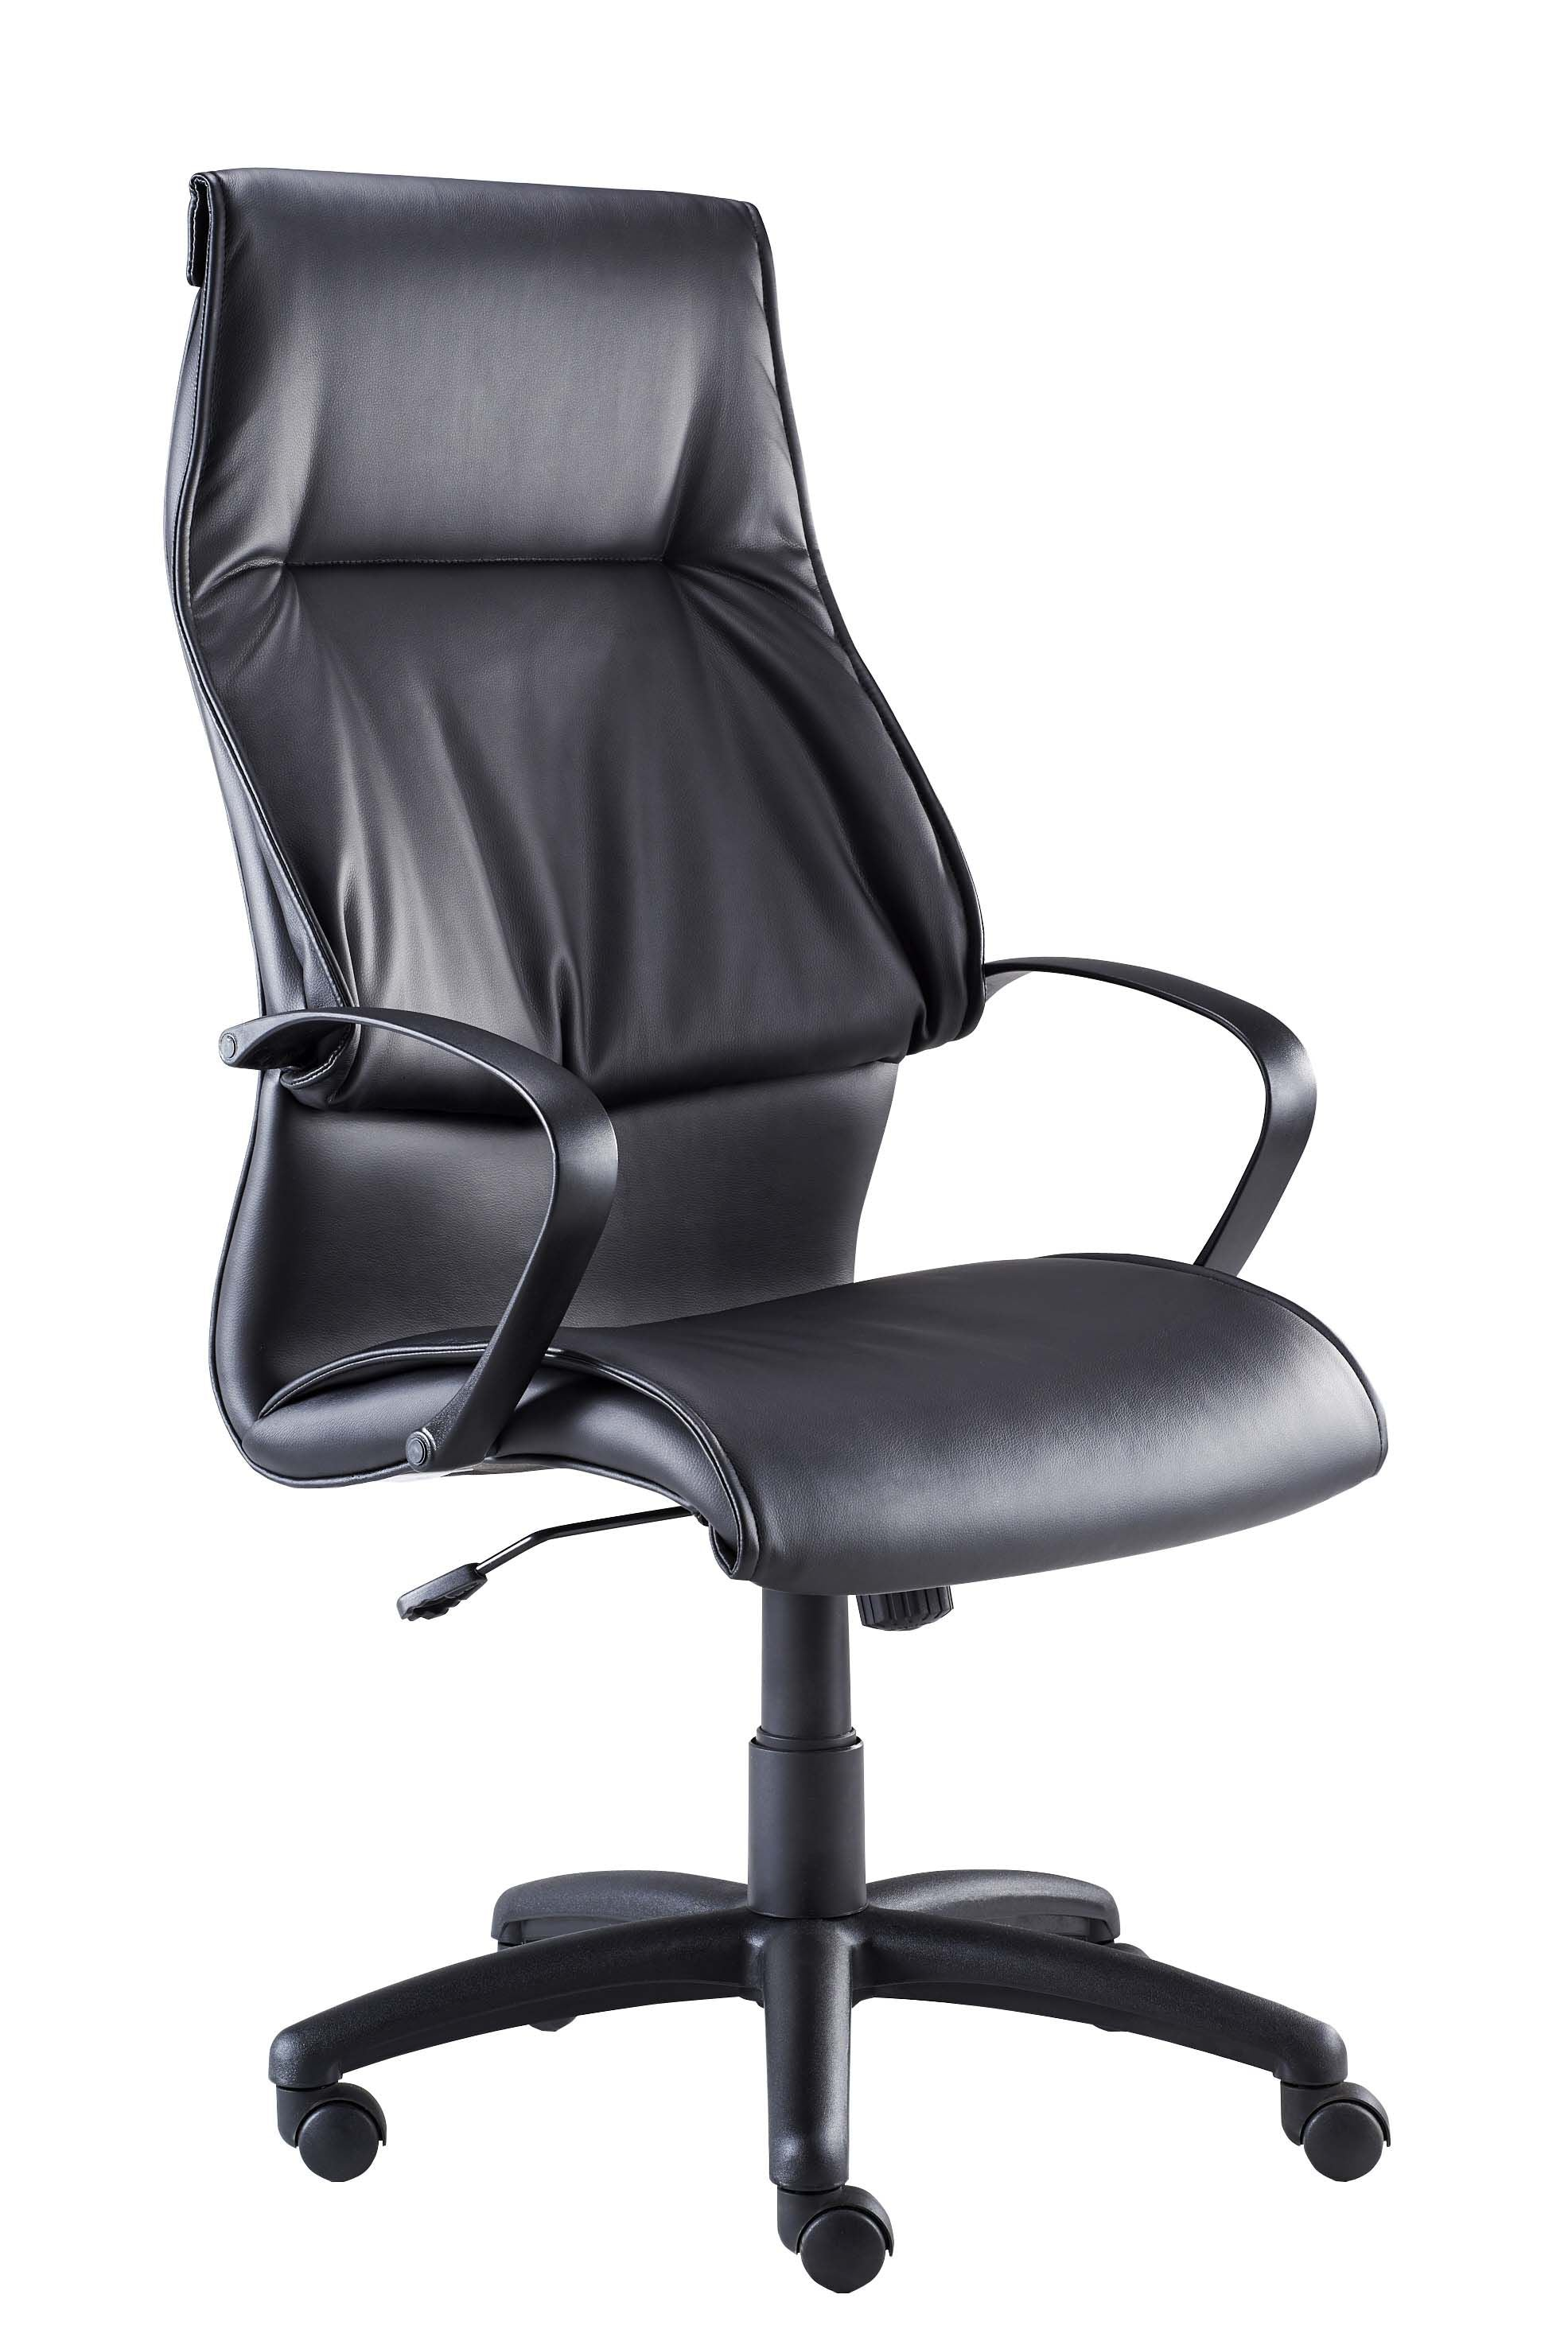 7600 Highback Chair  Office Chairs